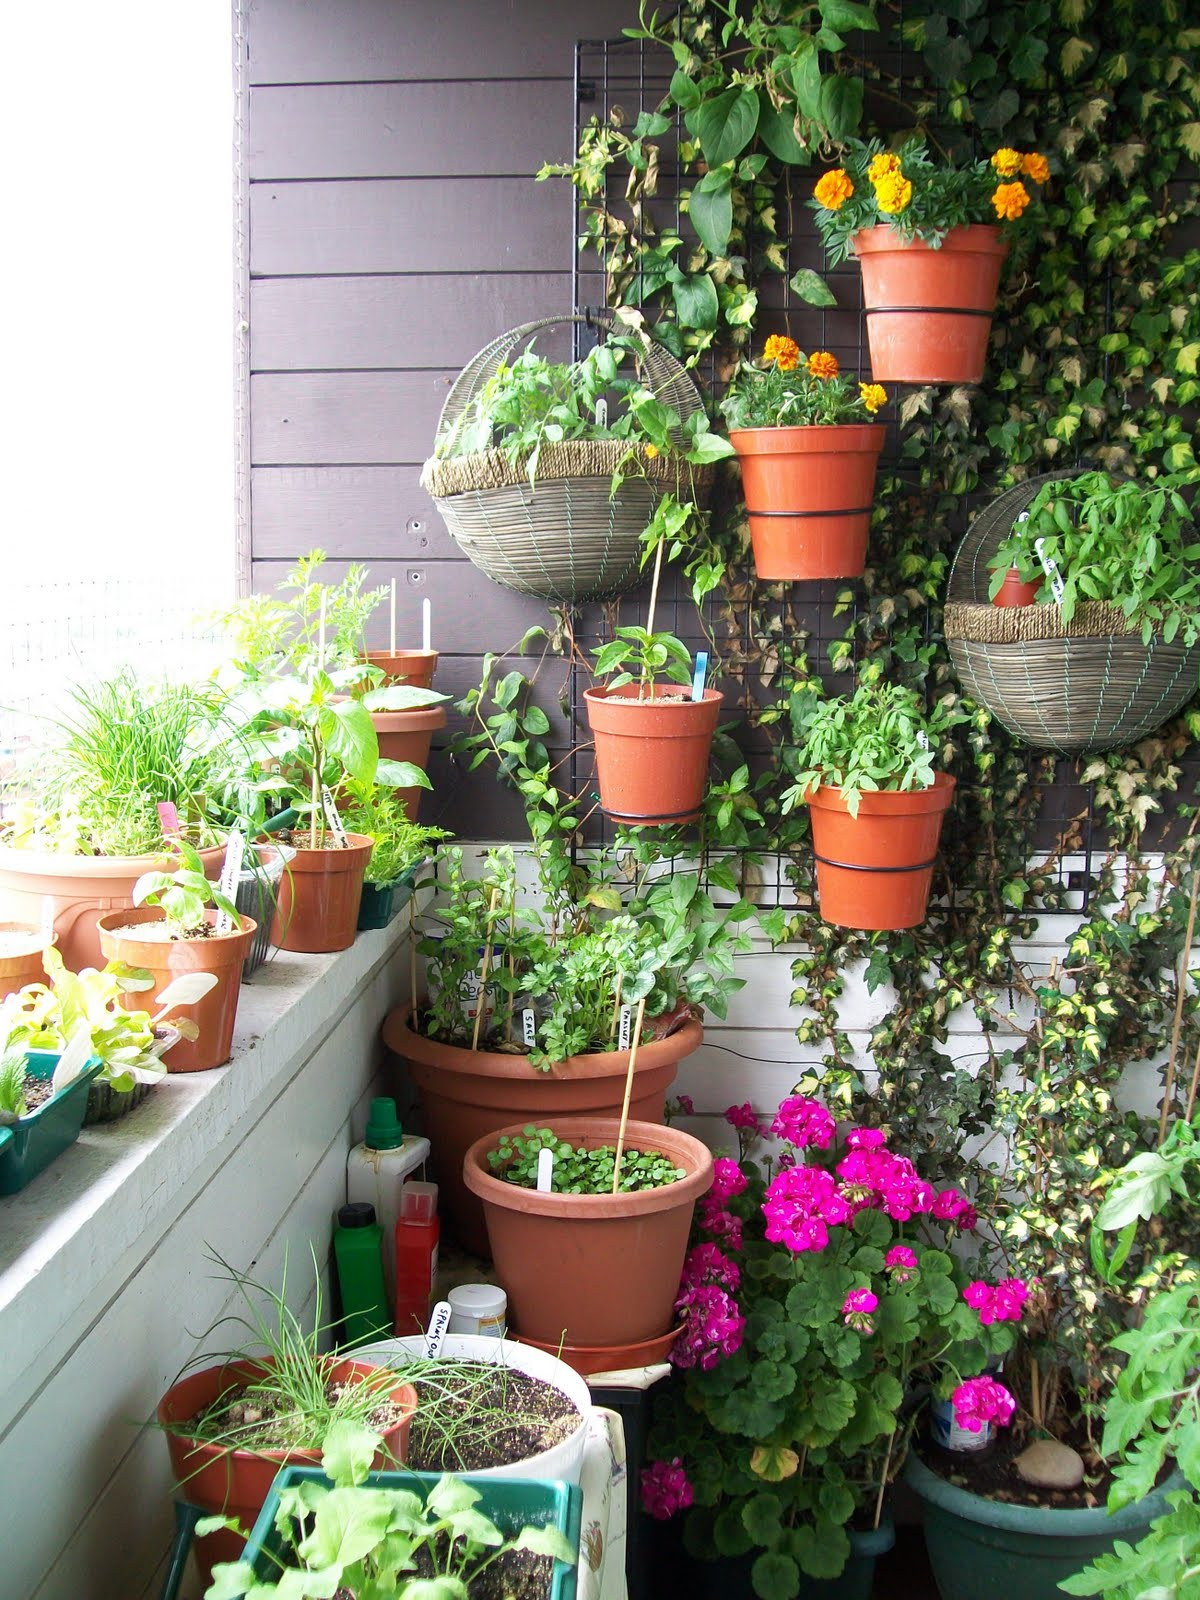 Small garden ideas beautiful renovations for patio or for Garden renovation ideas